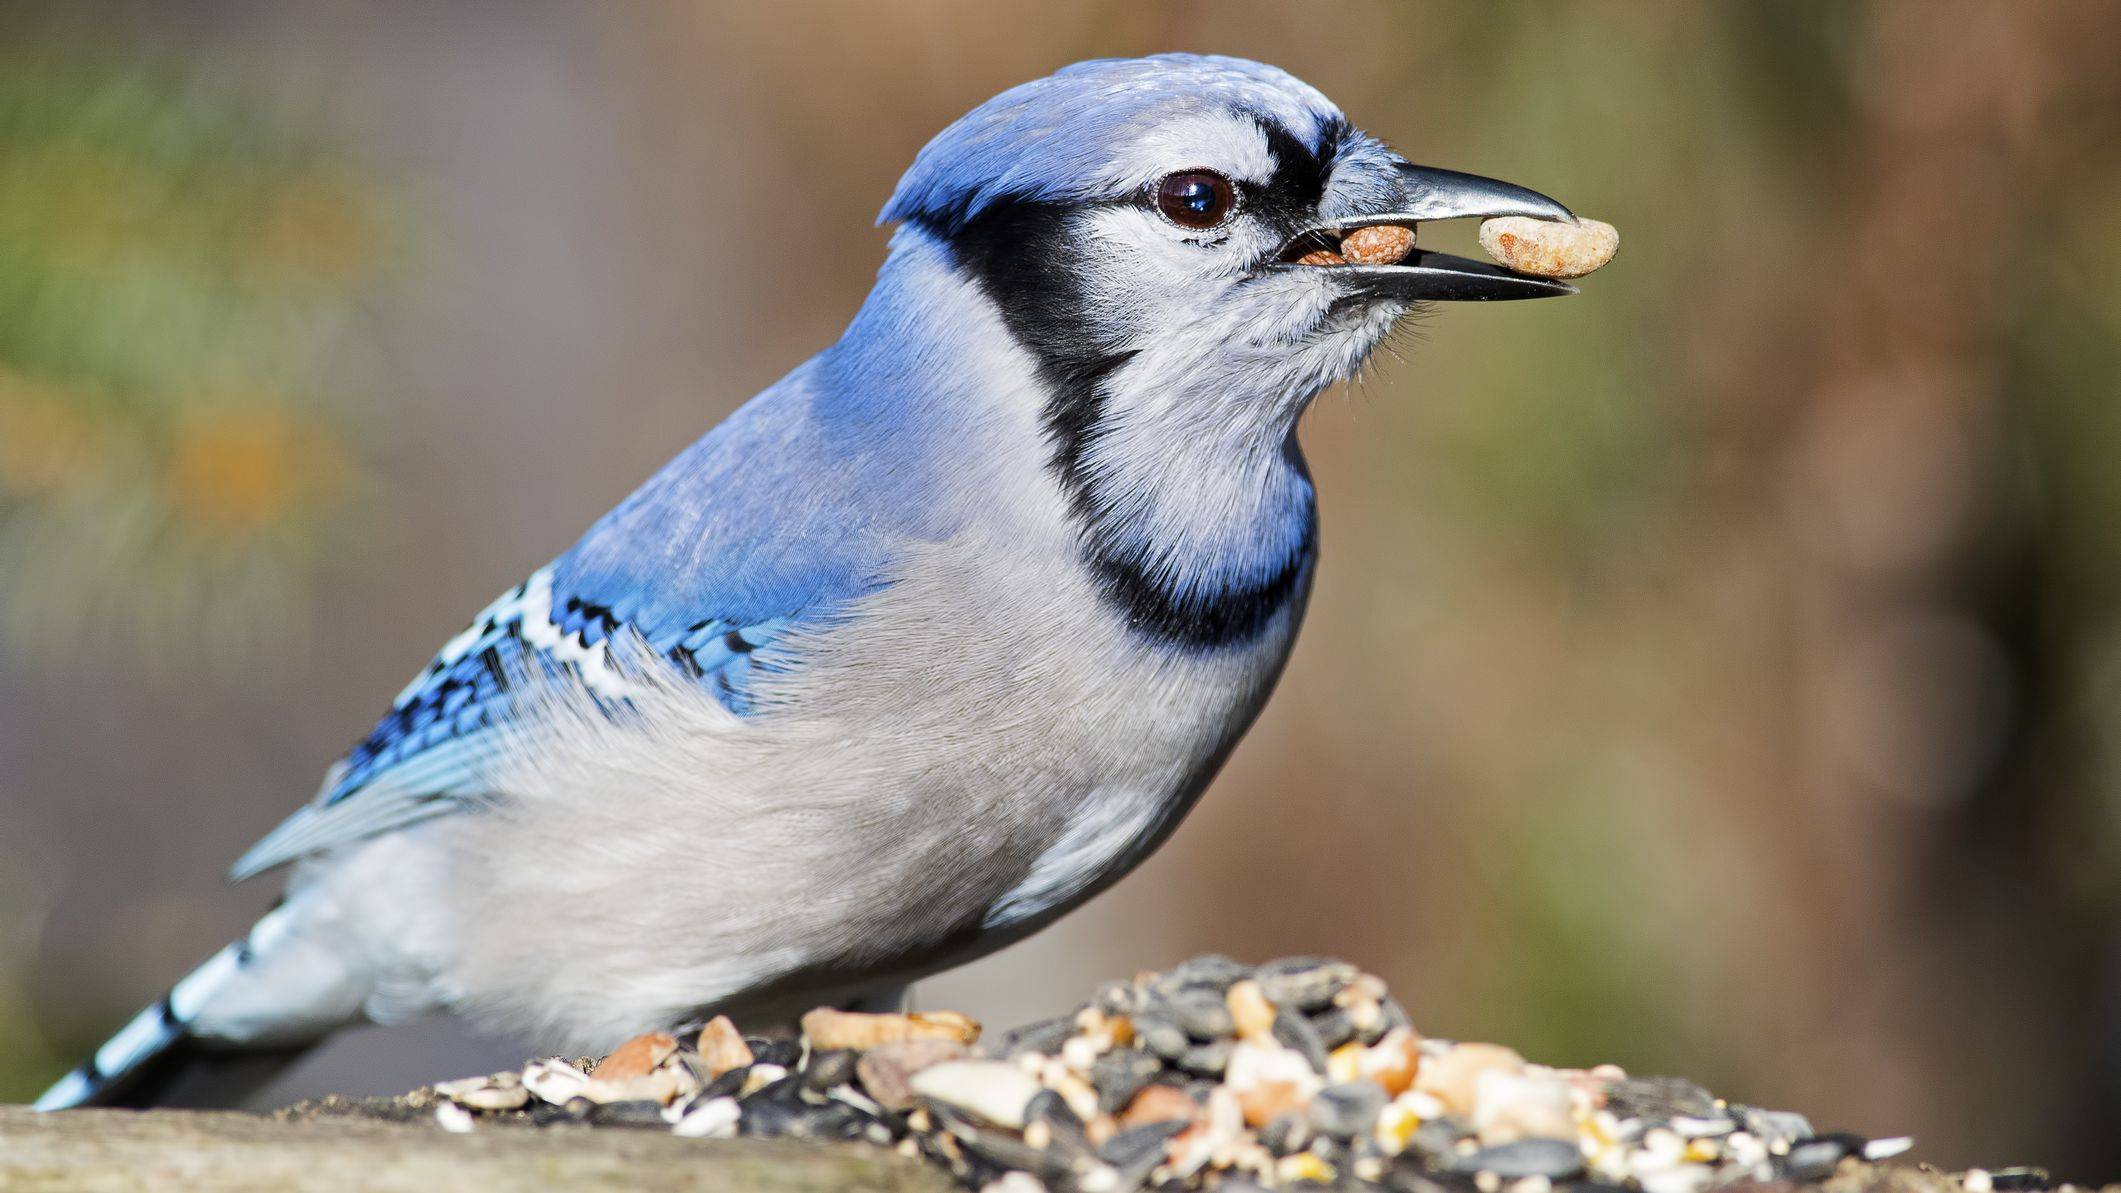 How To Attract Jays To Your Backyard